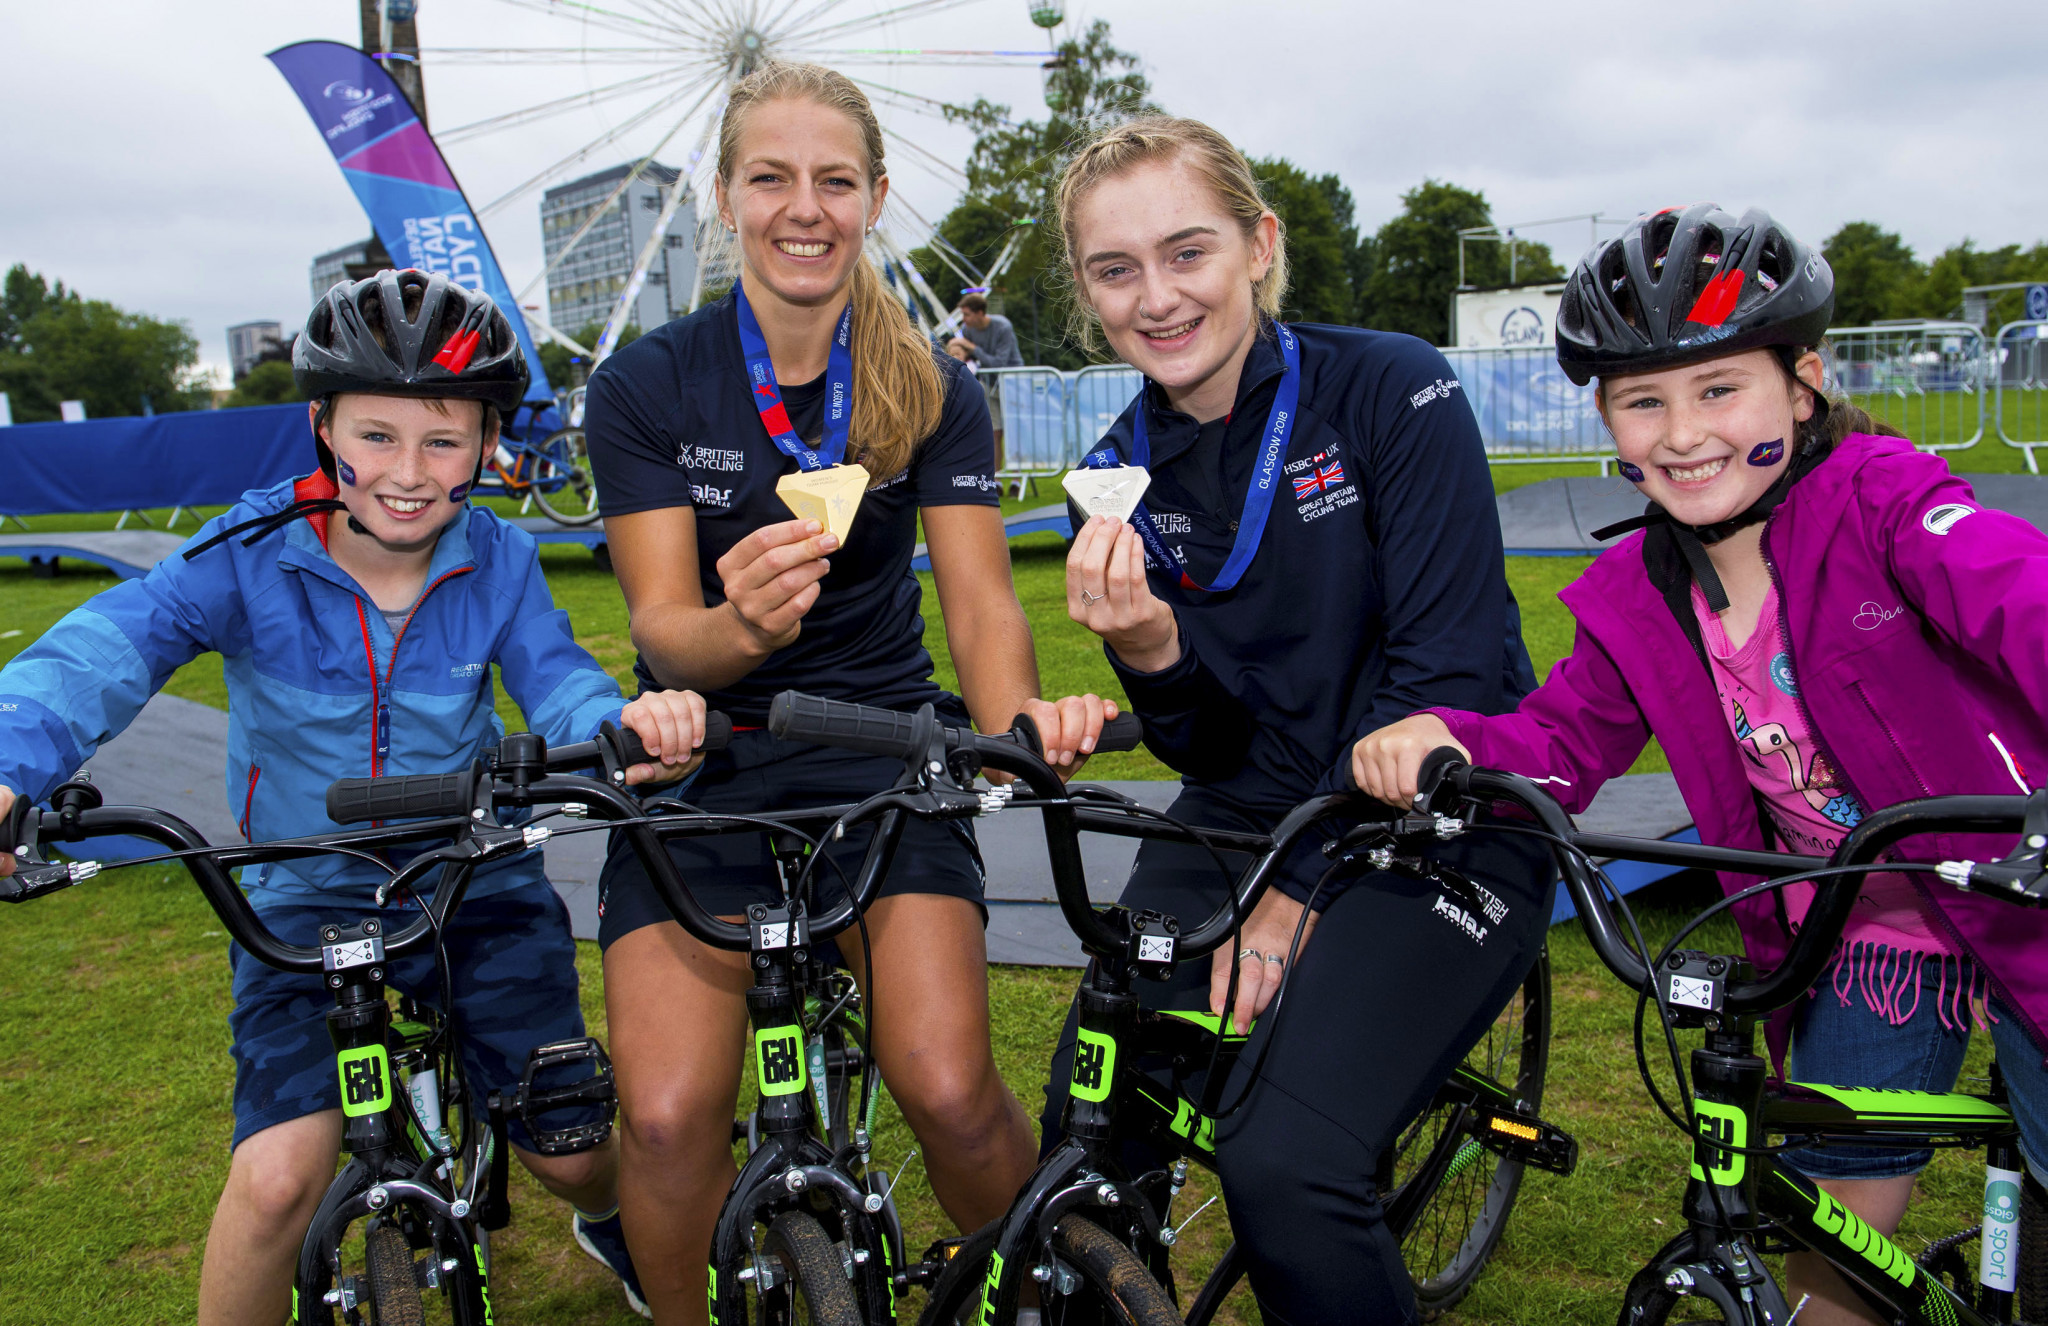 Team pursuit champion Neah Evans and scratch race silver medallist Emily Kay also visited the Green ©Glasgow 2018